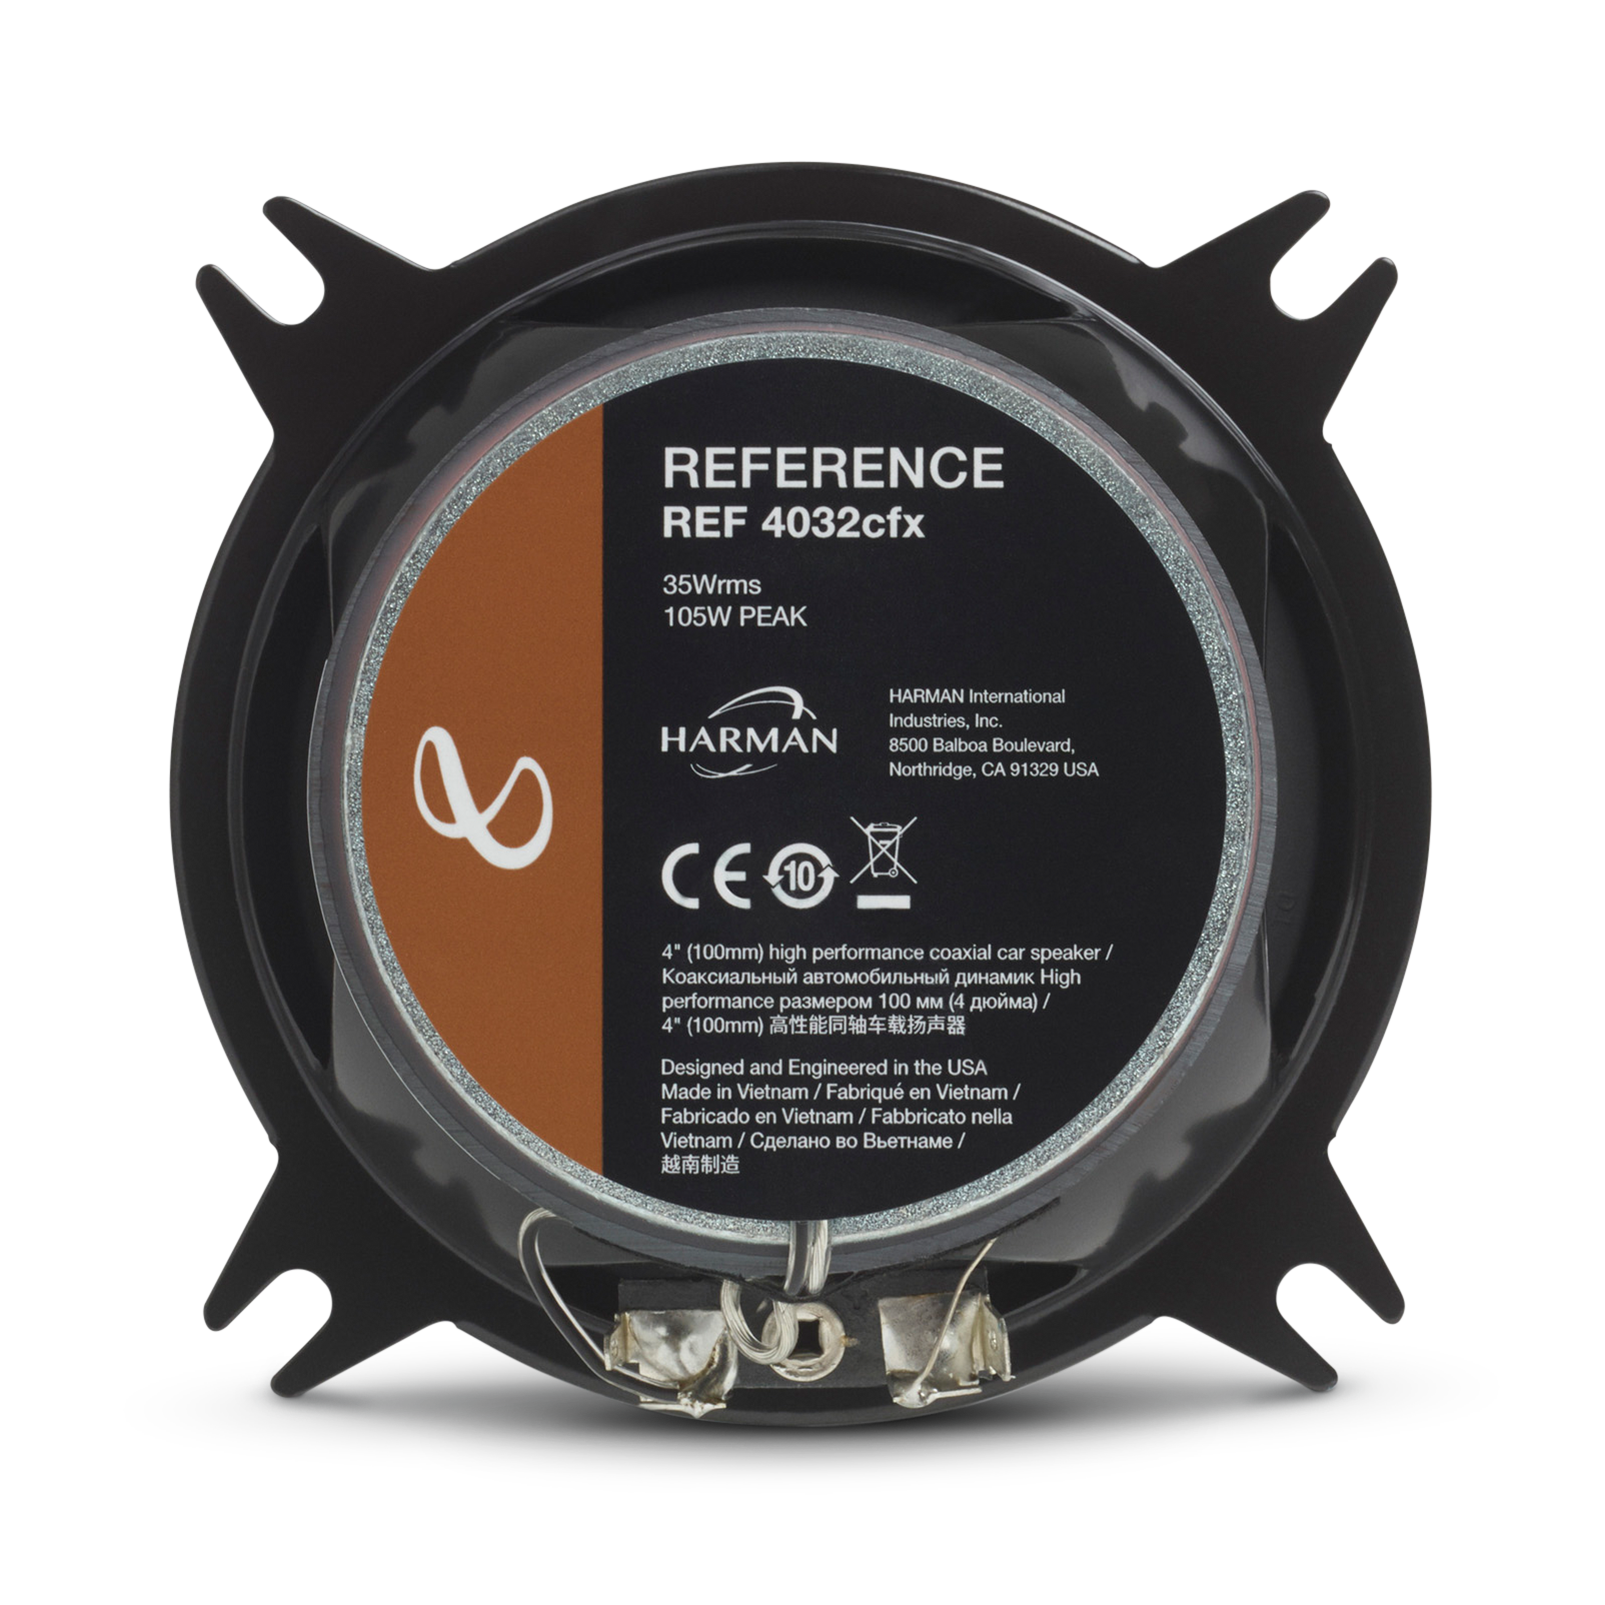 Reference 4032cfx